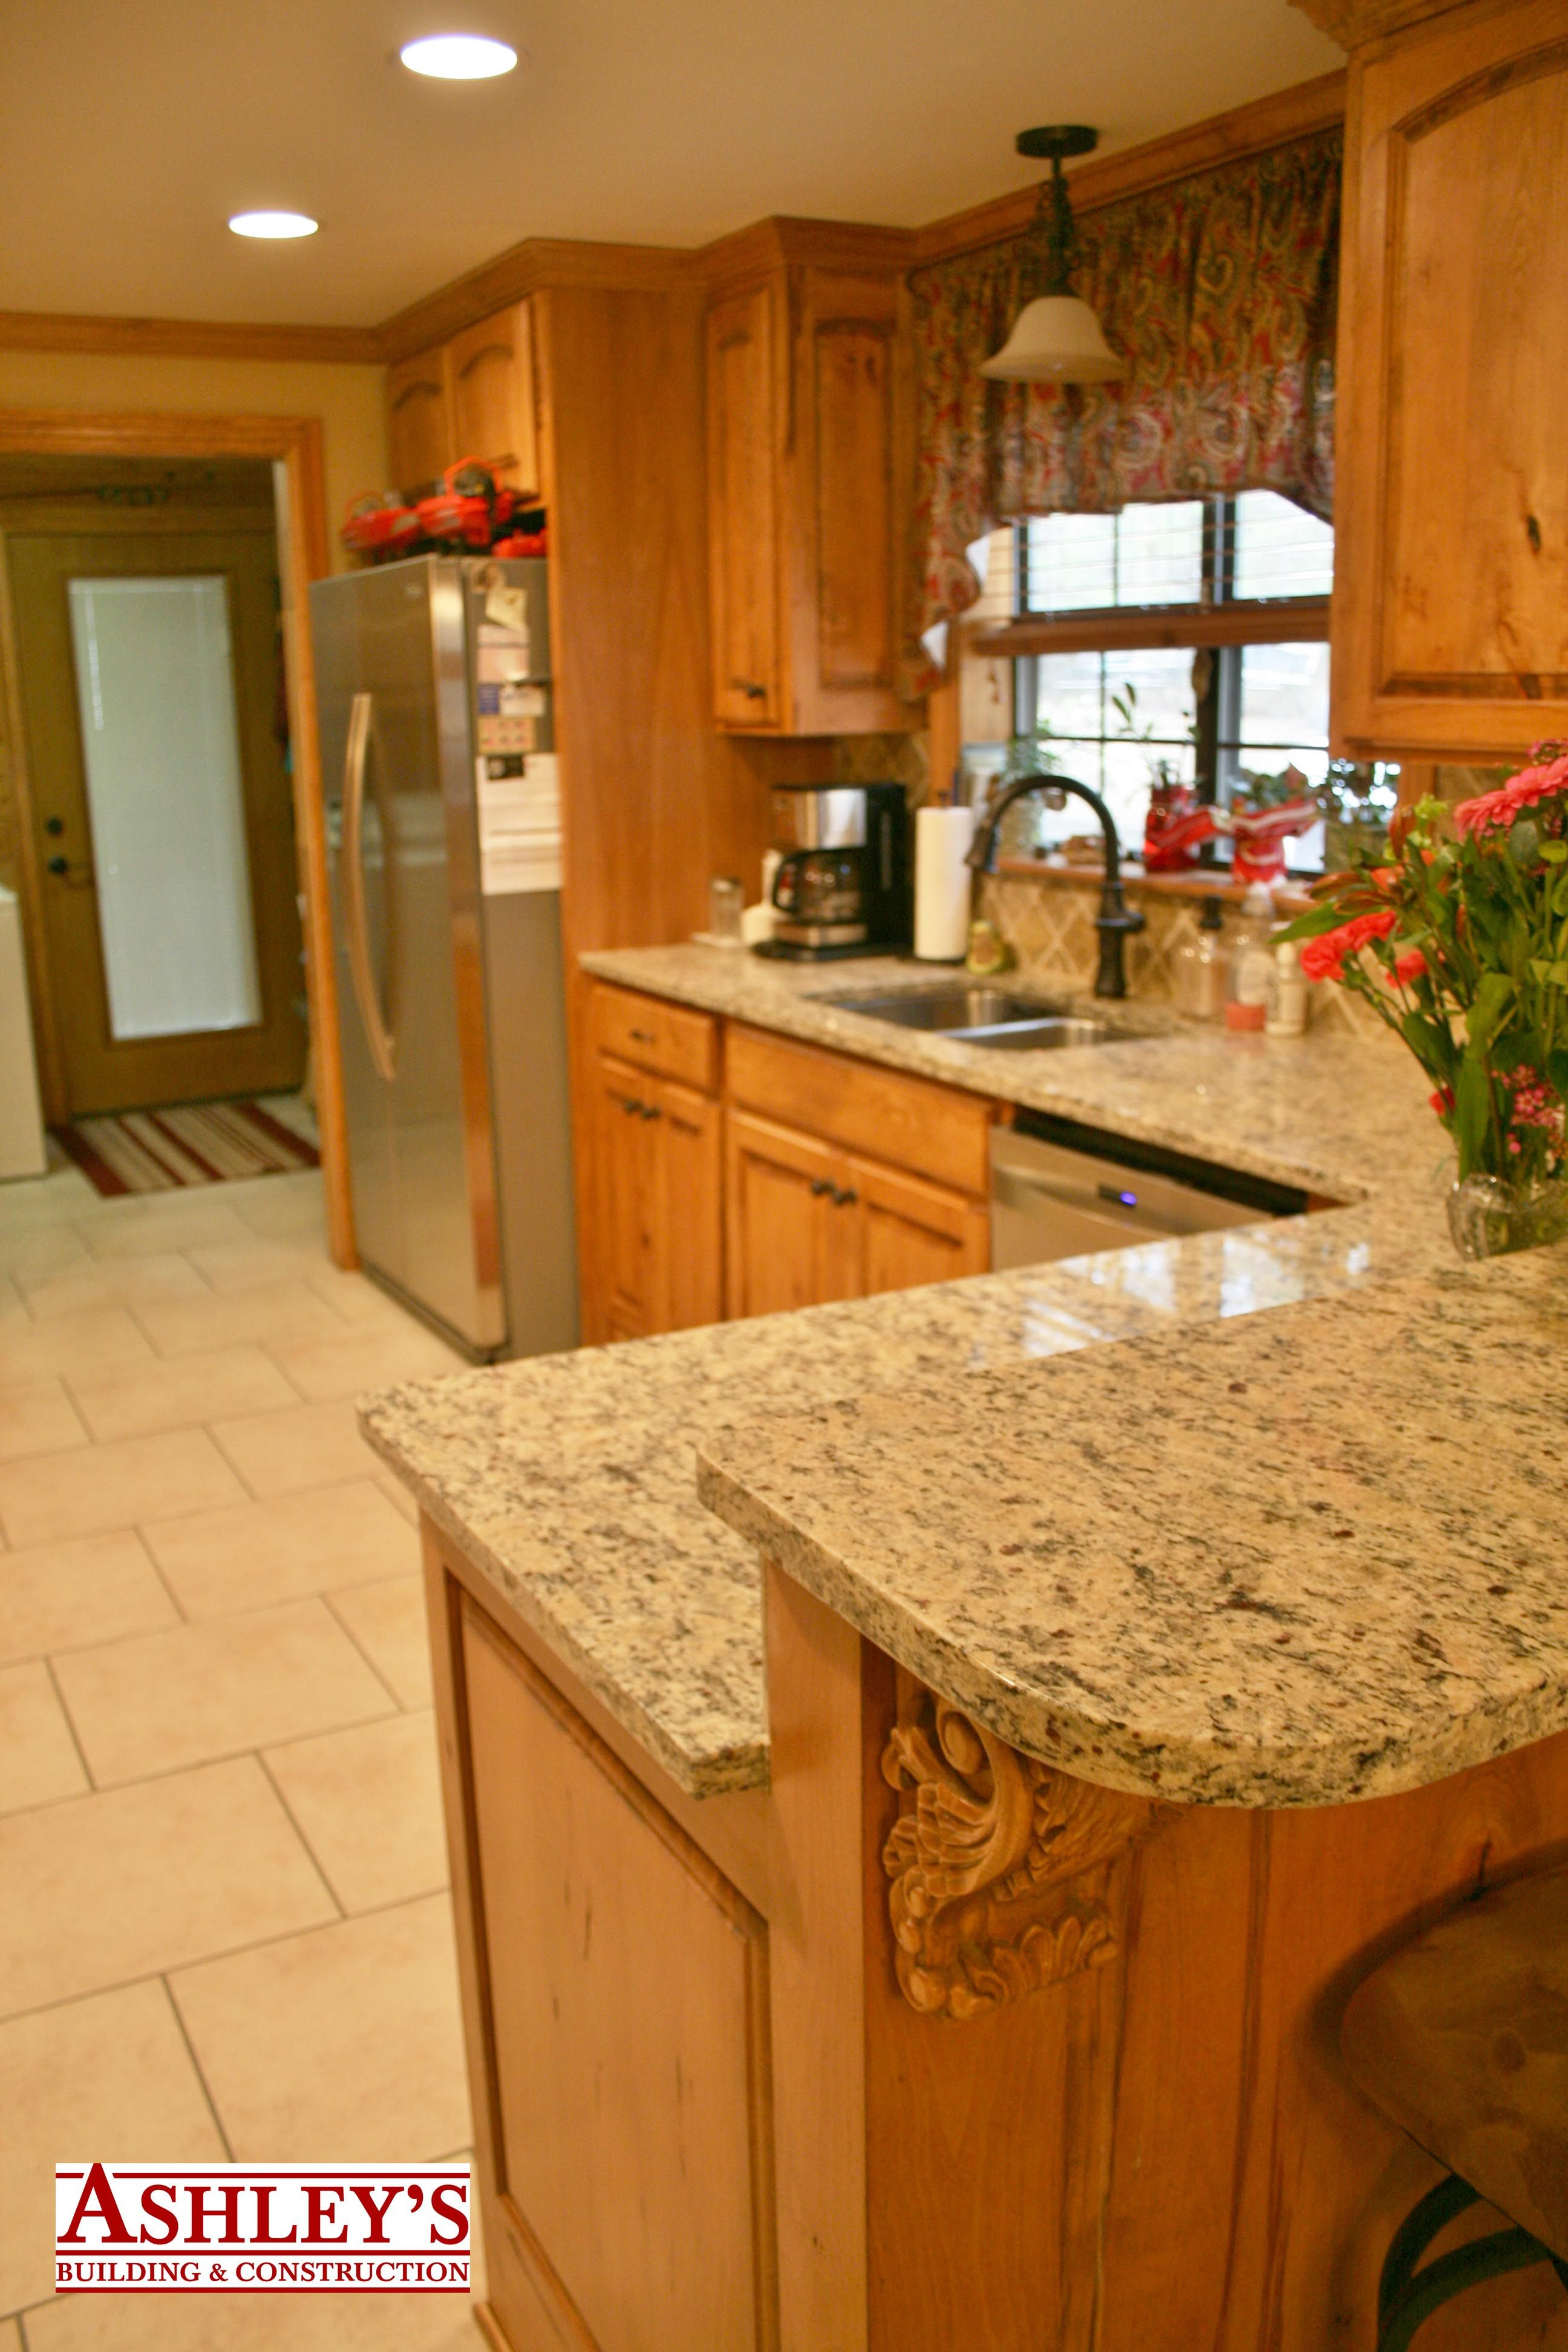 Kitchen Remodel Rustic Beech Custom Cabinets, Granite Countertop All New  Appliances.Country Kitchen.